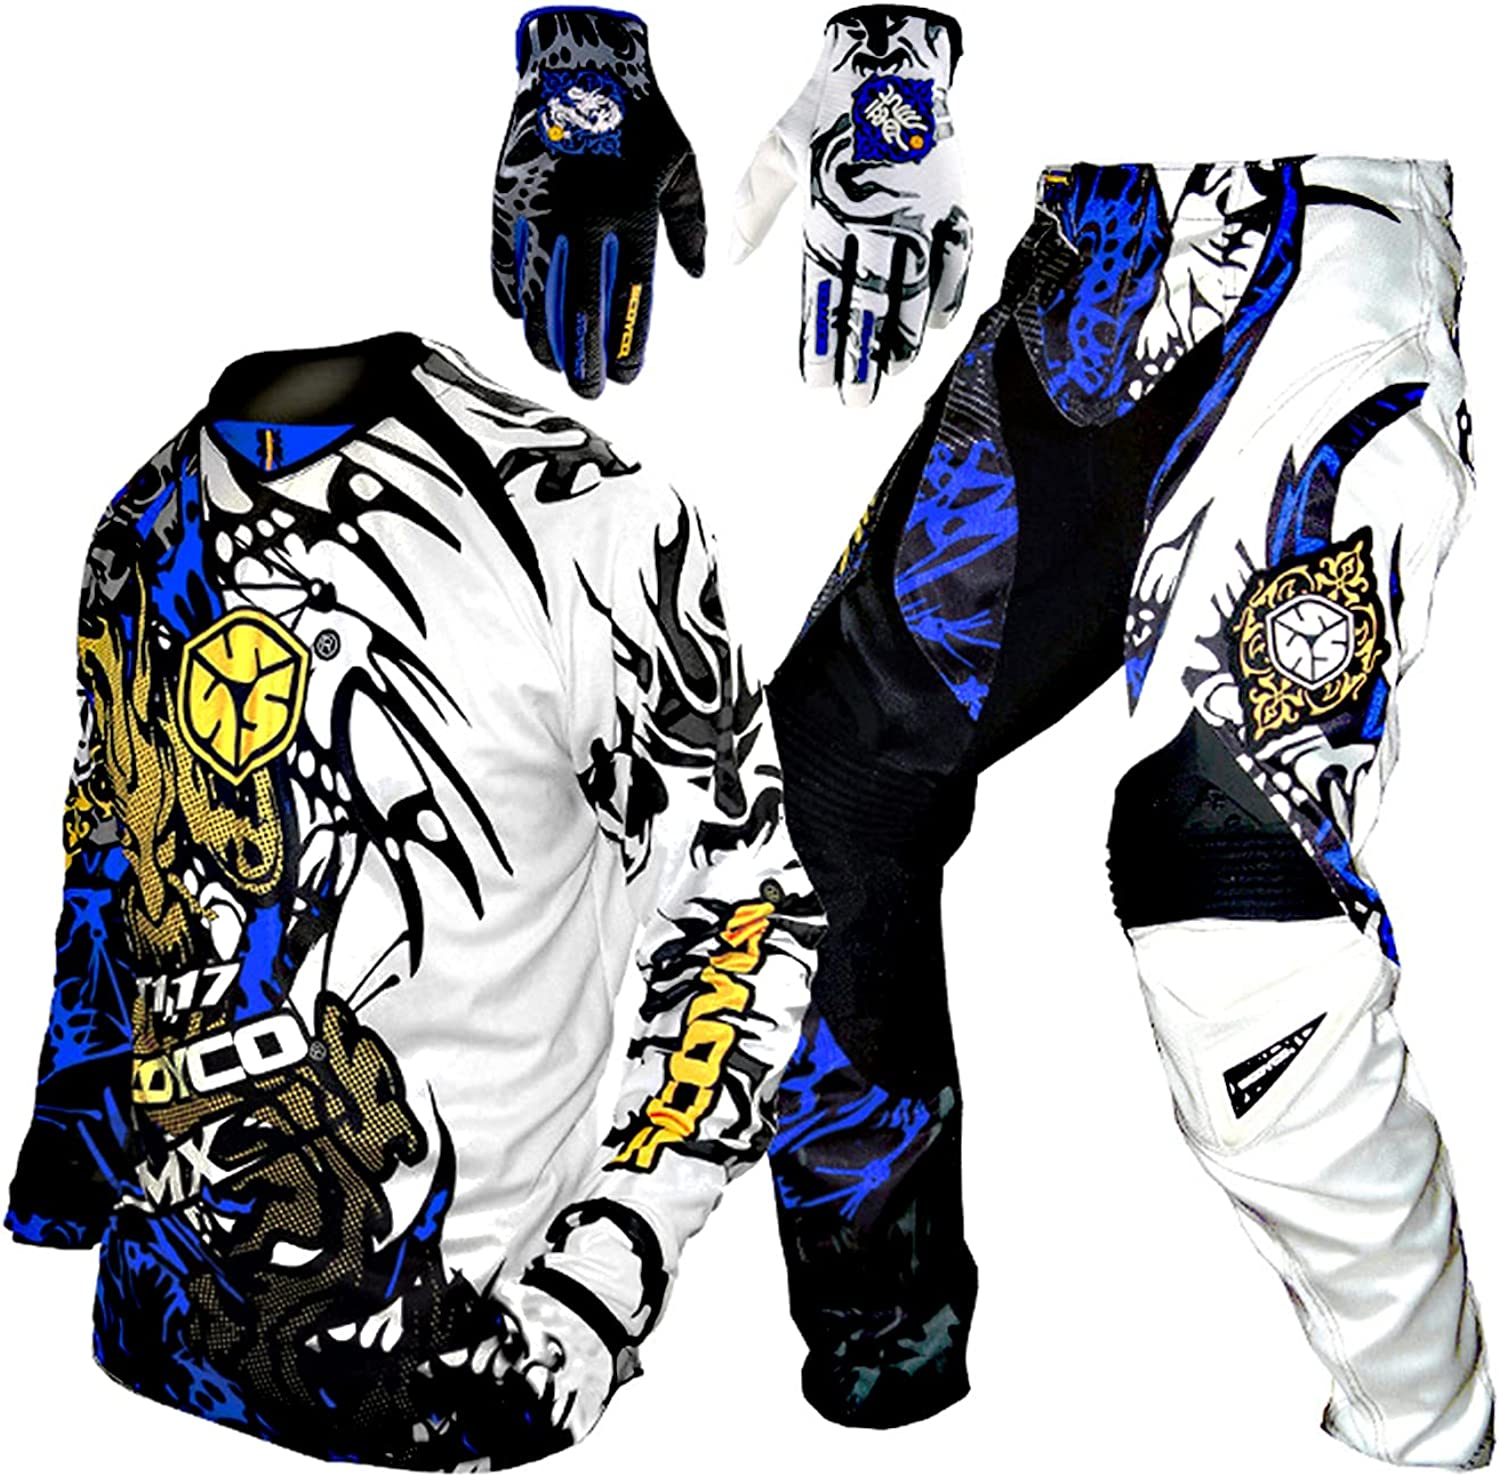 Motorcycle Racing Suit Rider Equipment Ranking TOP17 M And Breathable 2021 Light